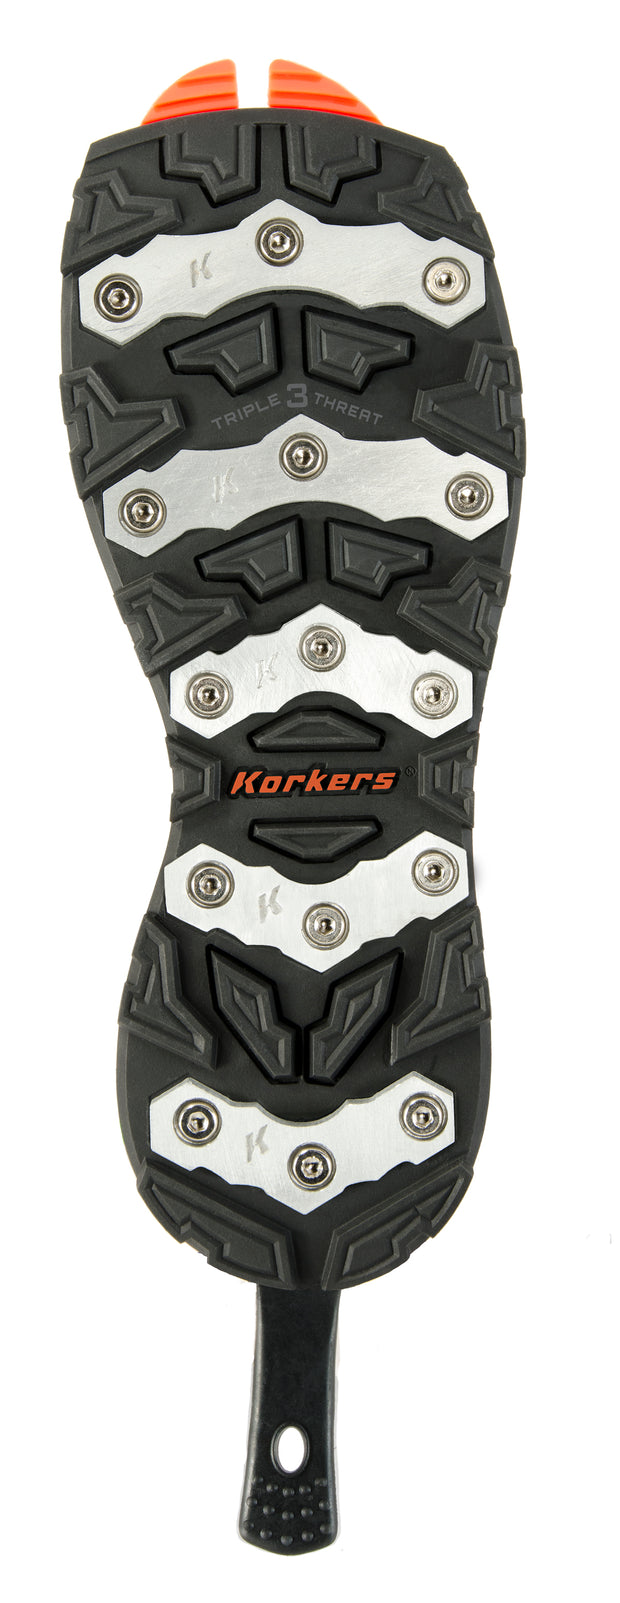 KORKERS Triple Threat Aluminum Bar Sole - The Painted Trout